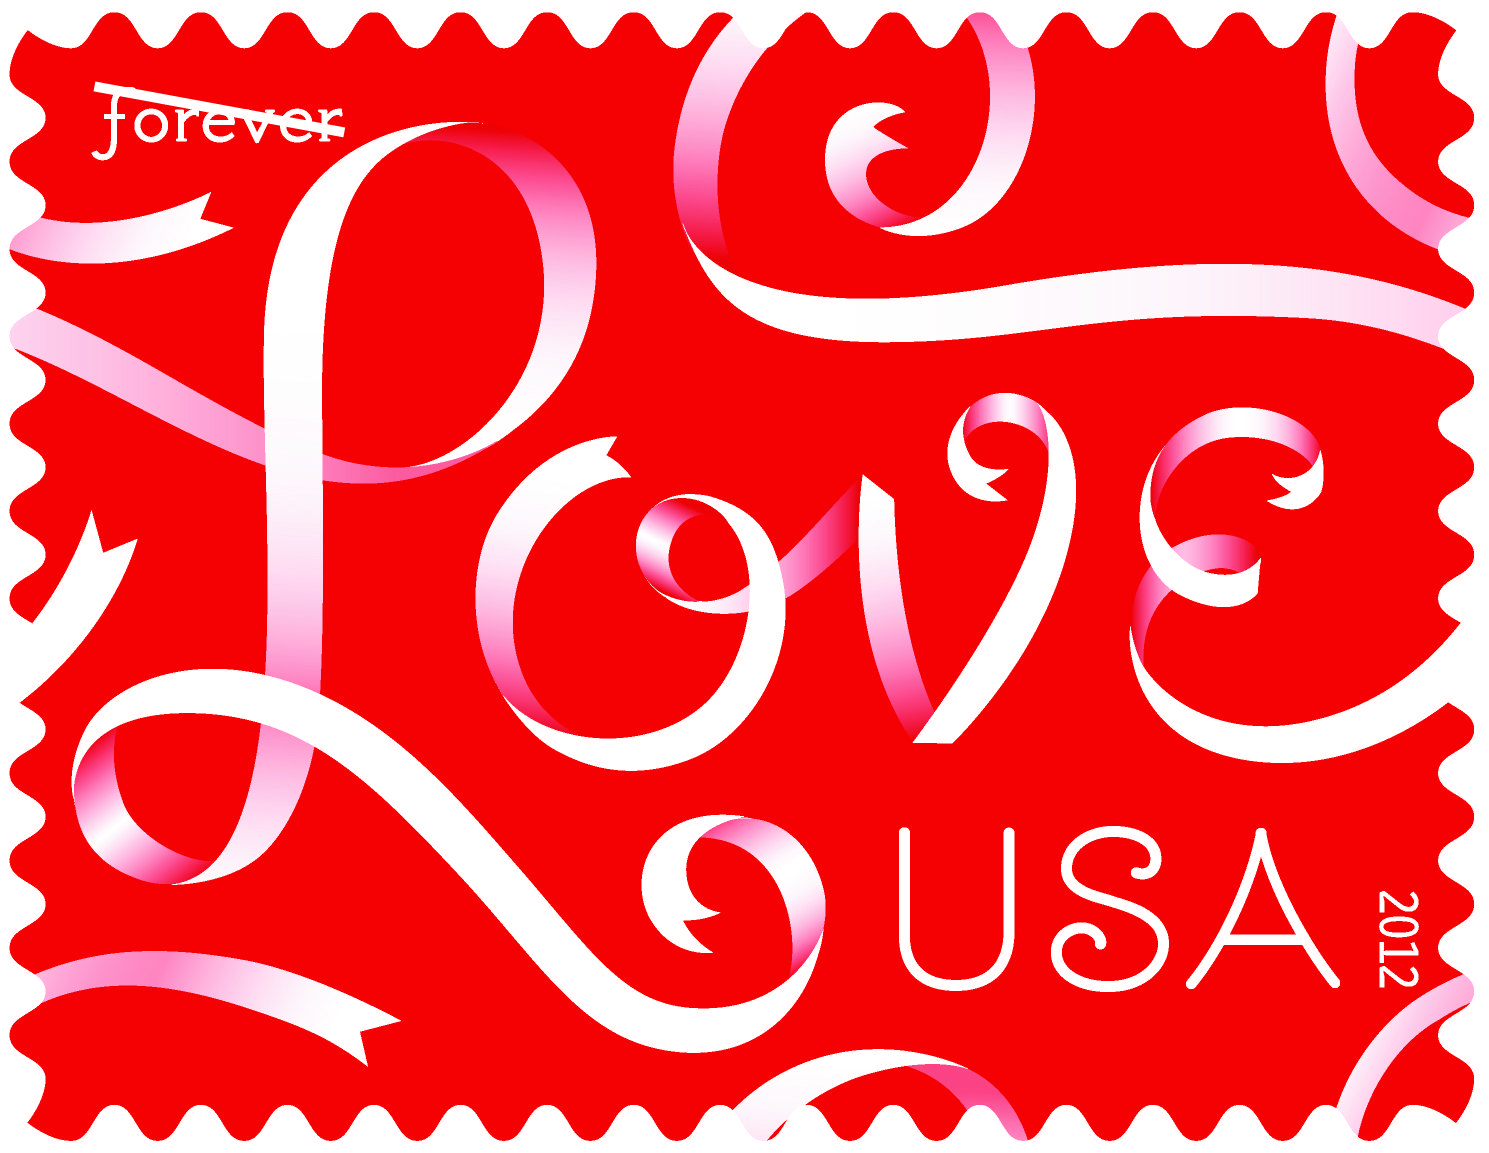 Evoking images of romance and elegance, the 2012 Love stamp features ...